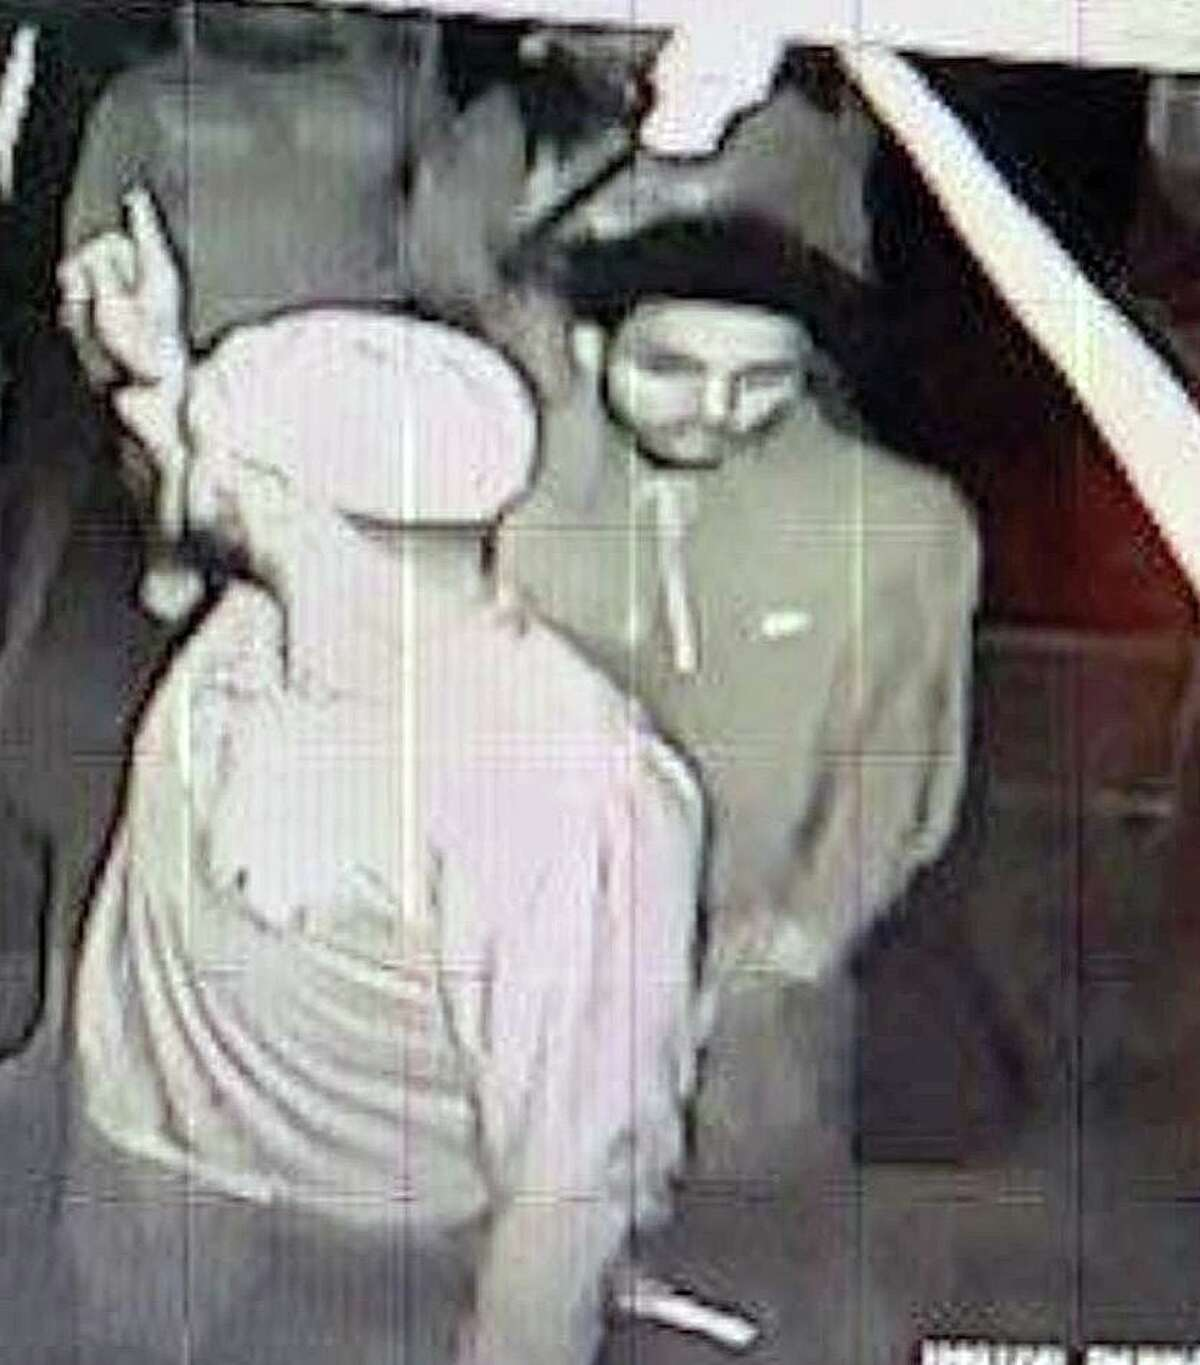 Police say these individuals were involved in an armed robbery in Tolland, Conn., on Oct. 10, 2021.